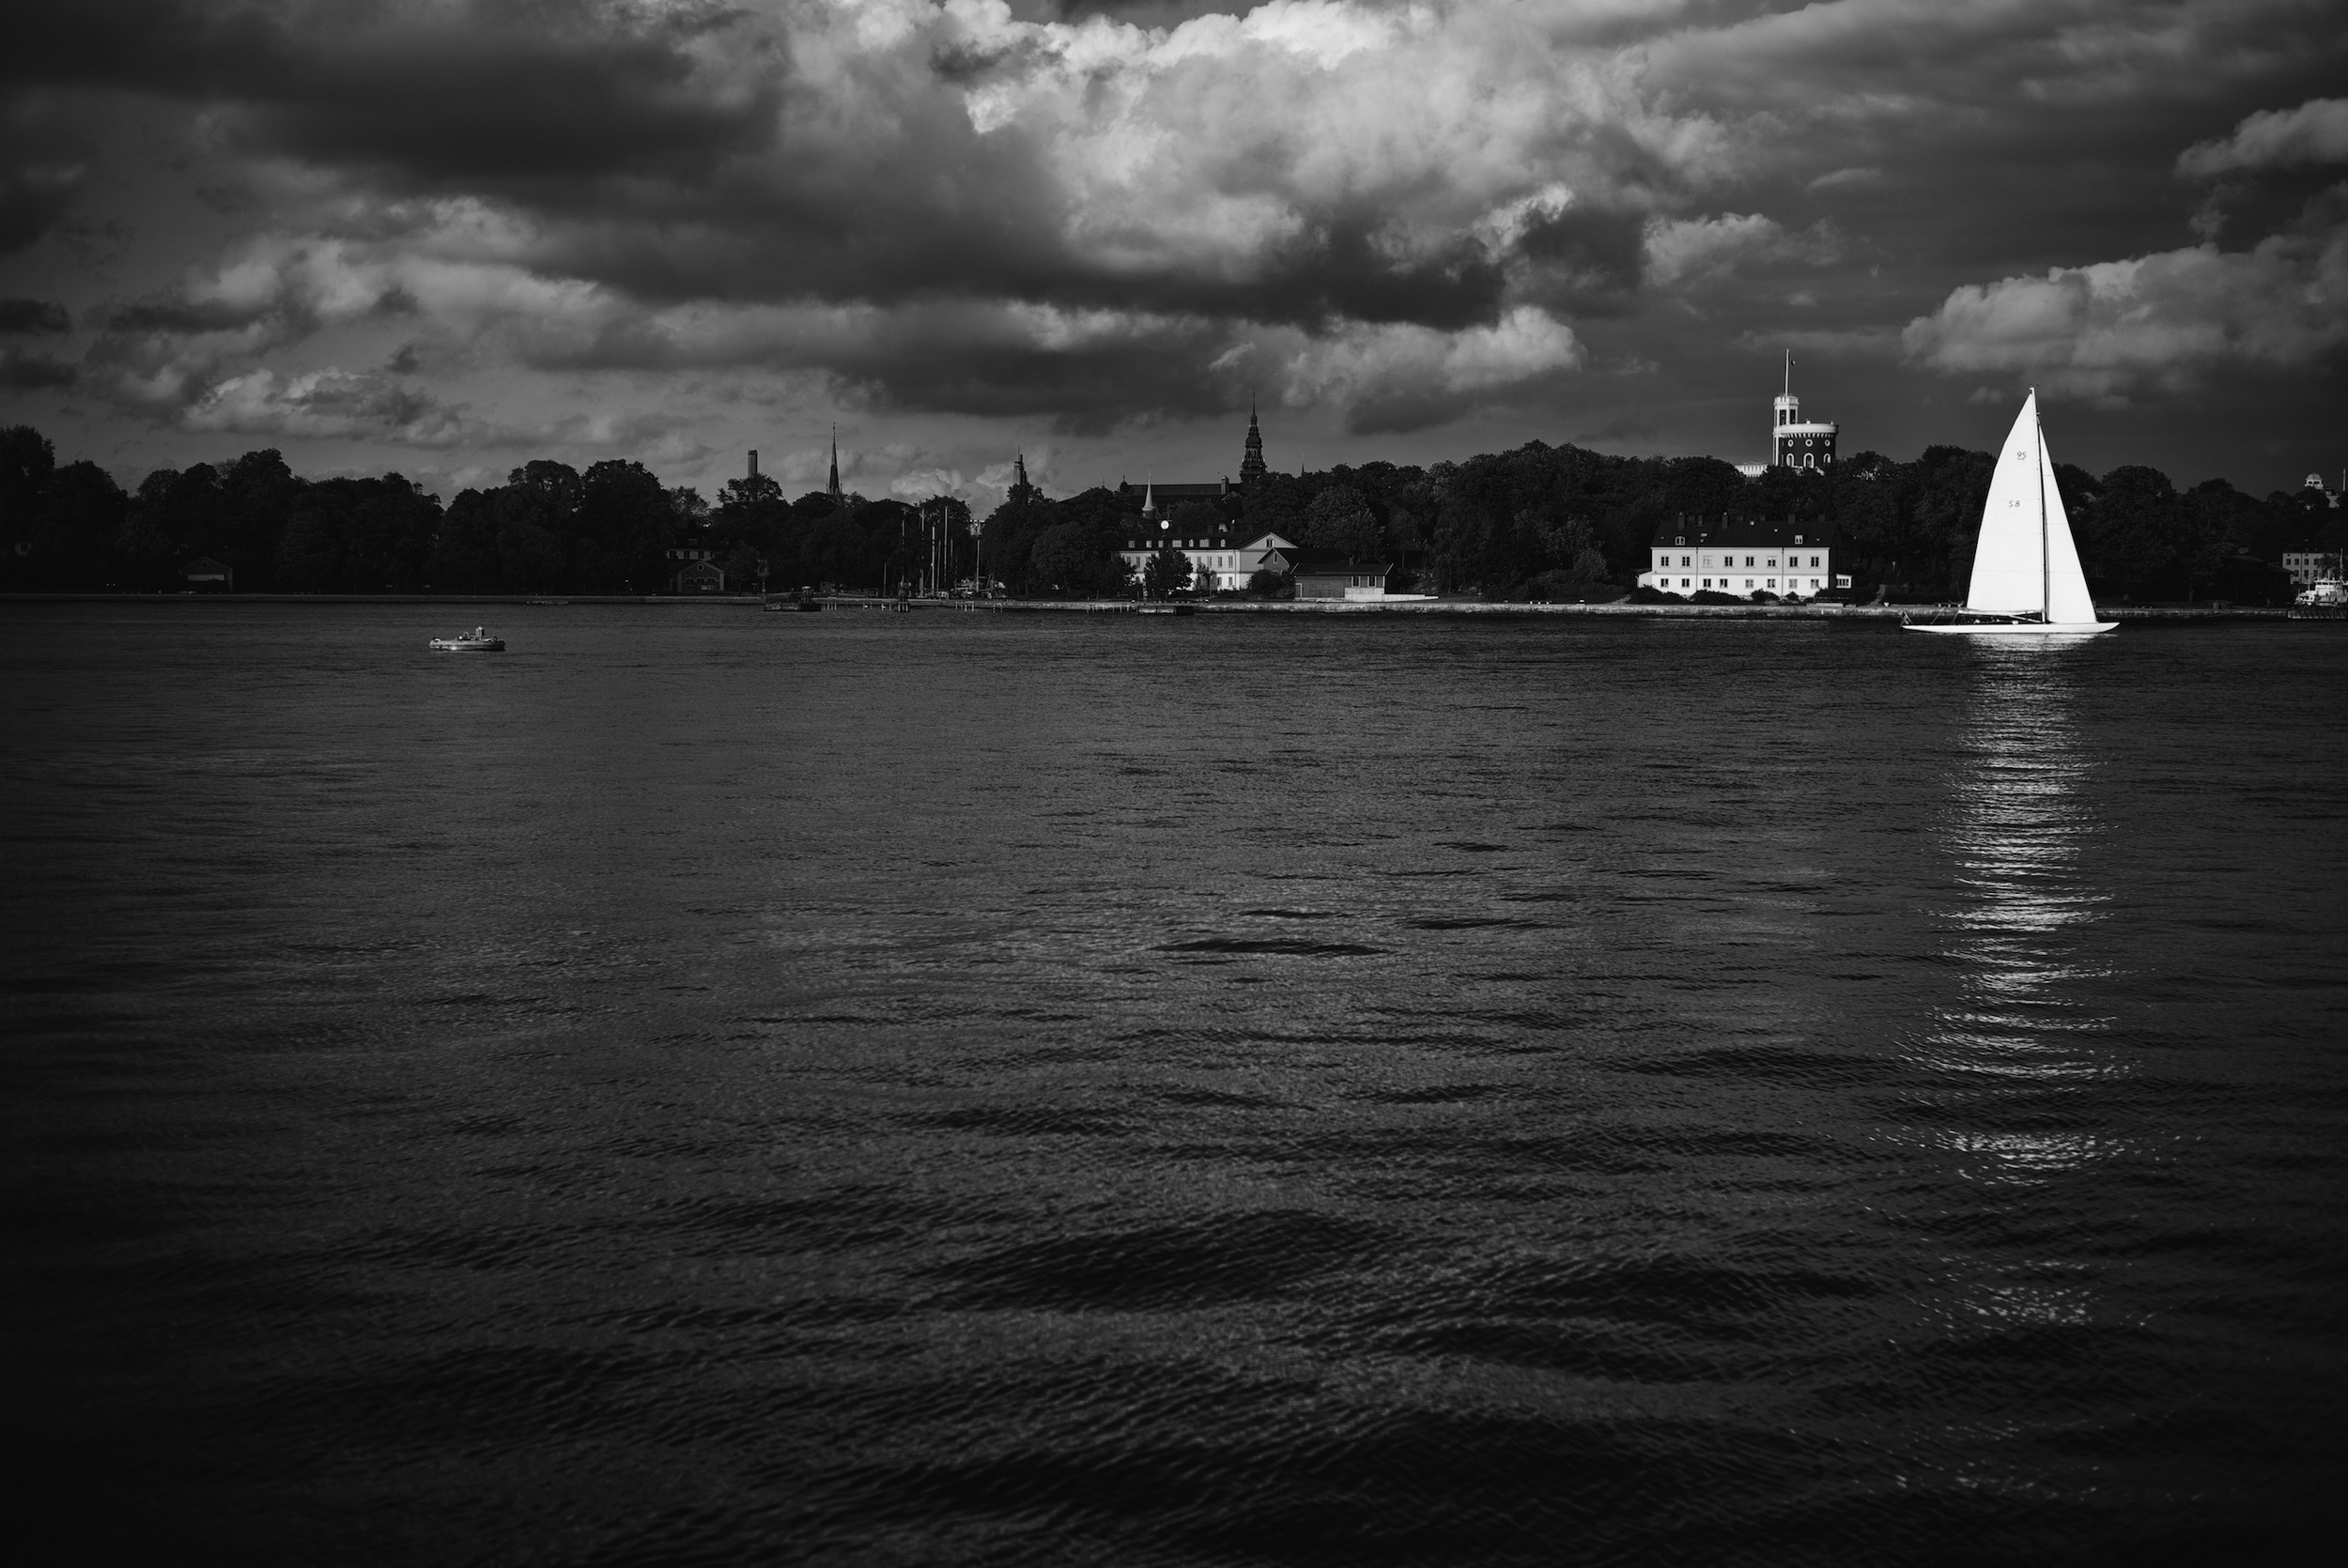 After a visit to the photography museum in Stockholm, Fotografiska, we looked out over the water at this scene.